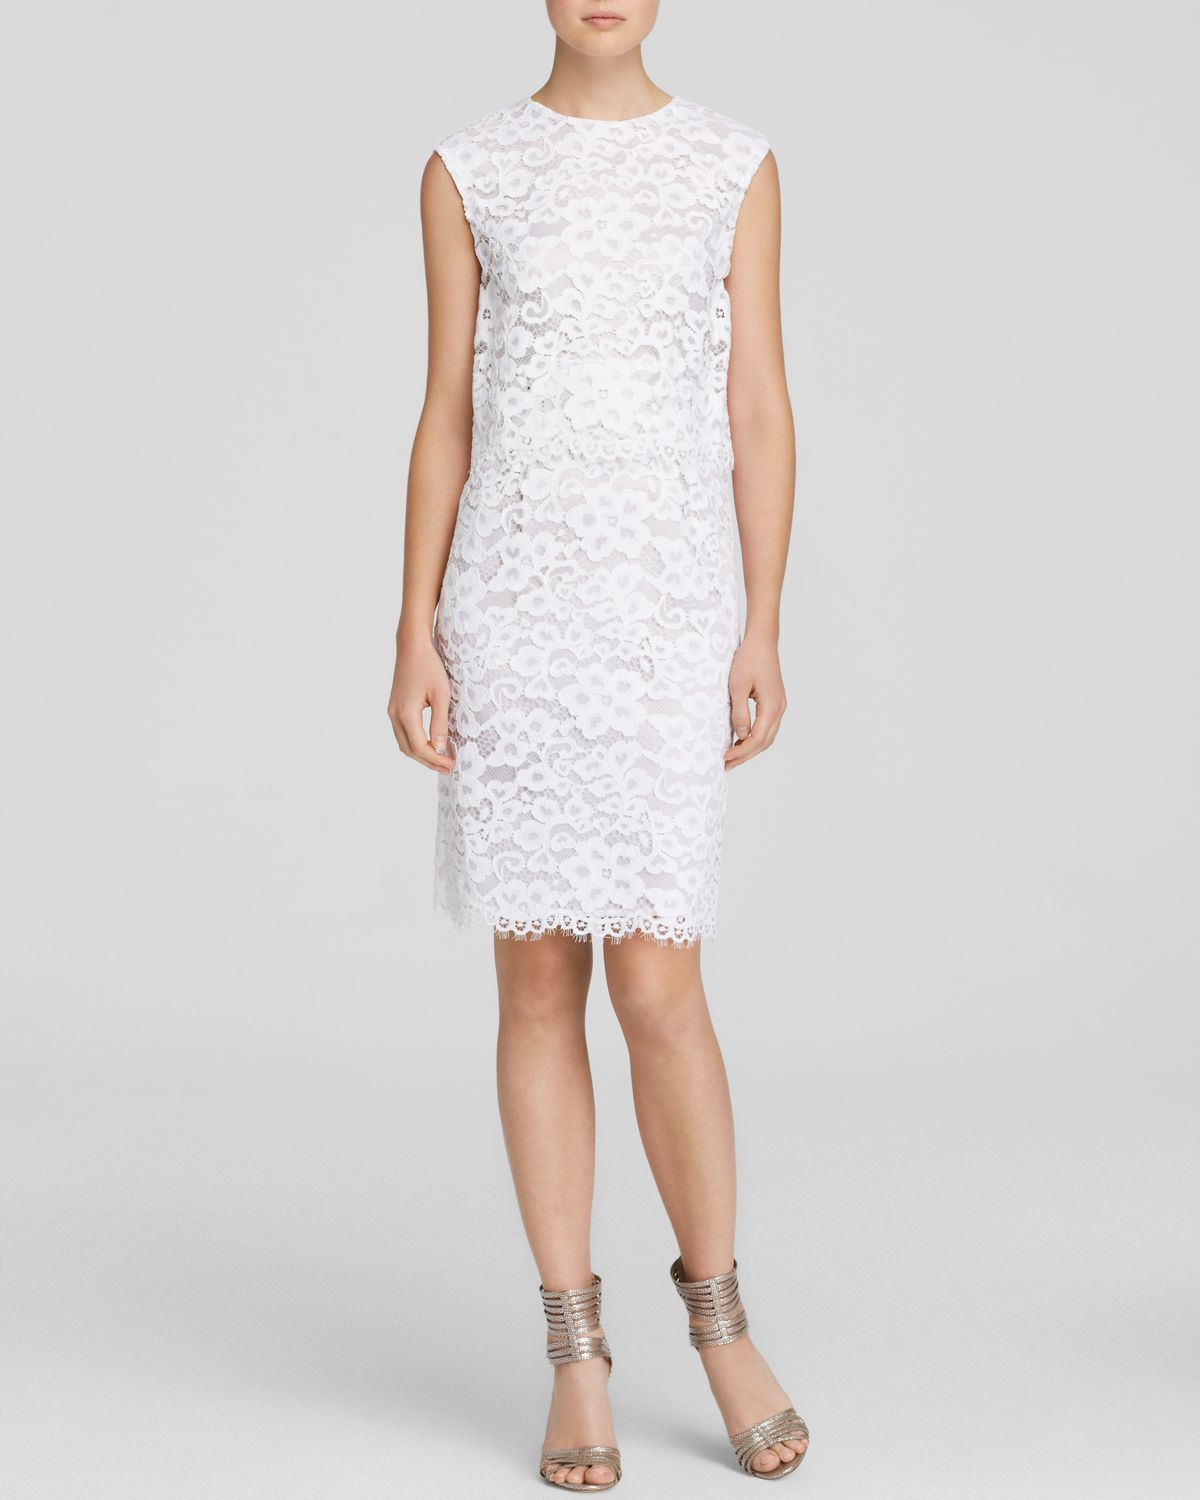 Shoshanna Lola Lace Dress - Bloomingdale'S Exclusive in White | Lyst